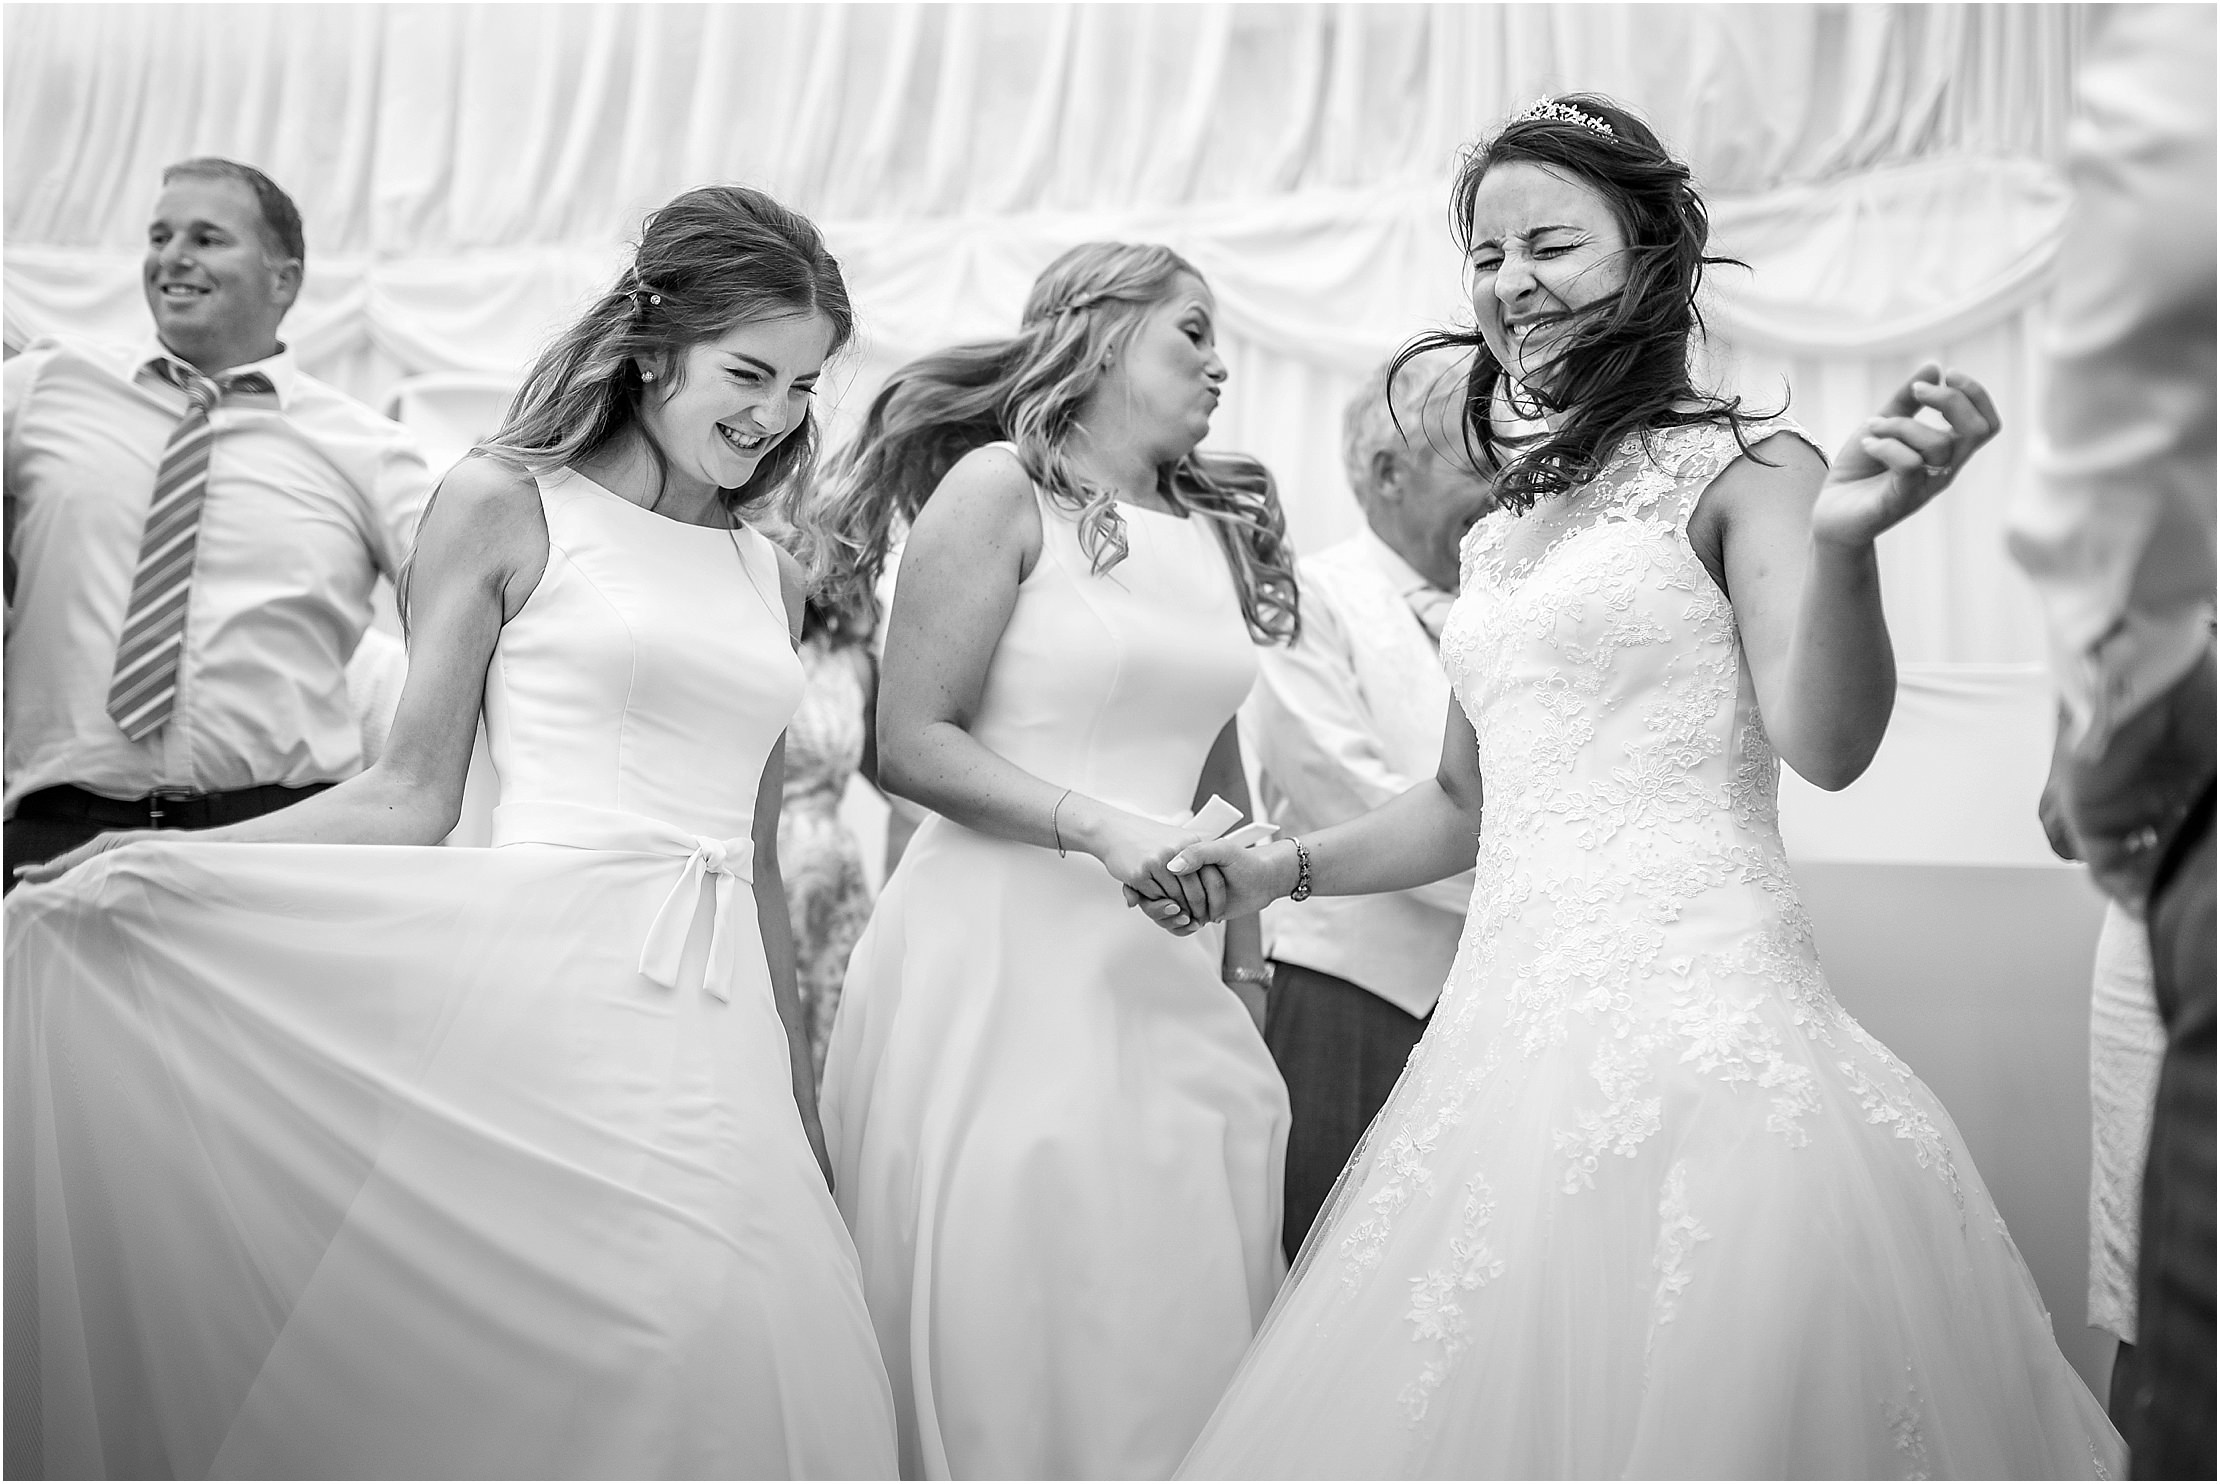 dan-wootton-wedding-photography-2015 - 060.jpg